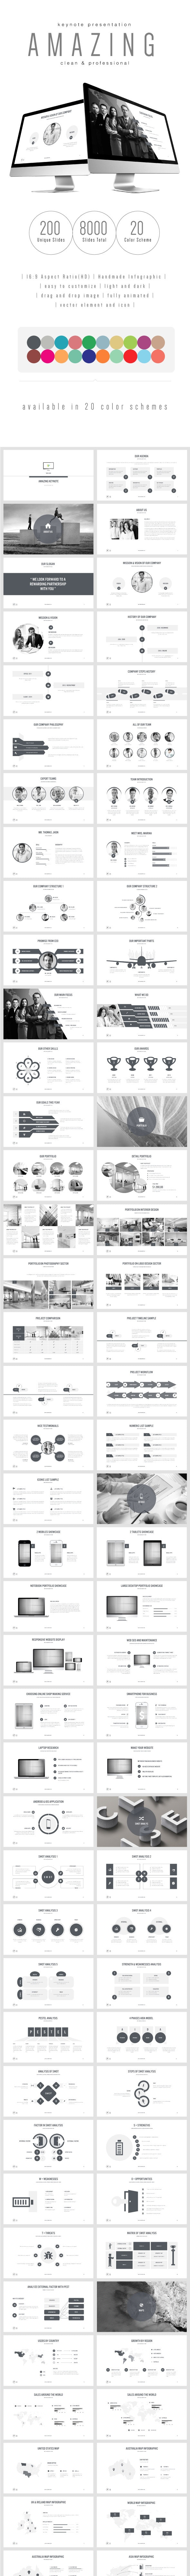 Multipurpose Keynote Presentation (Vol. 15) - Keynote Templates Presentation Templates